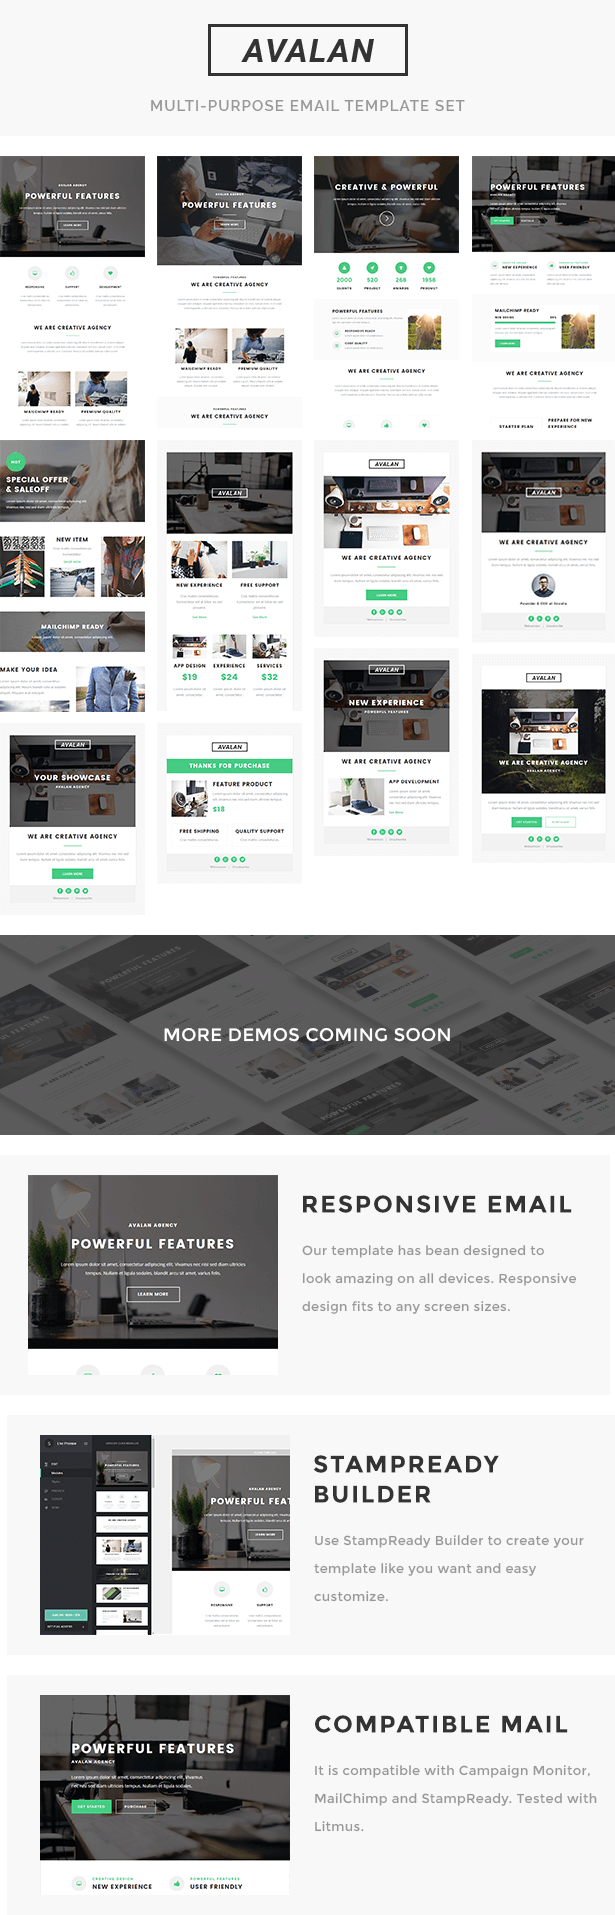 Avalan - Responsive Email Set | Viral marketing, Template and ...